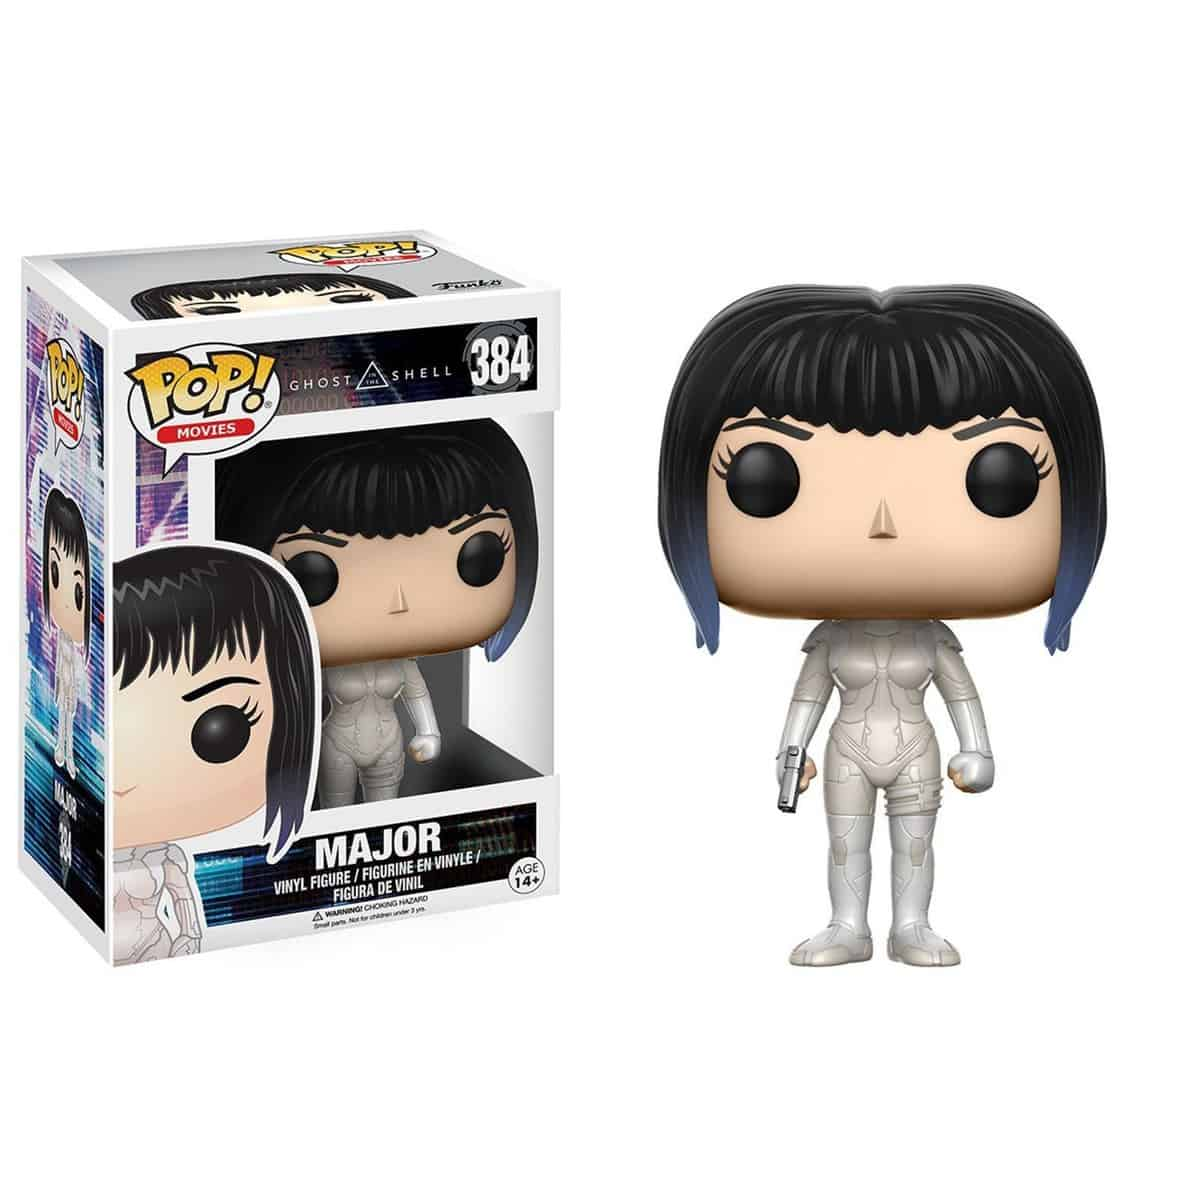 Funko POP! Ghost In the Shell - Major Vinyl Figure 10cm